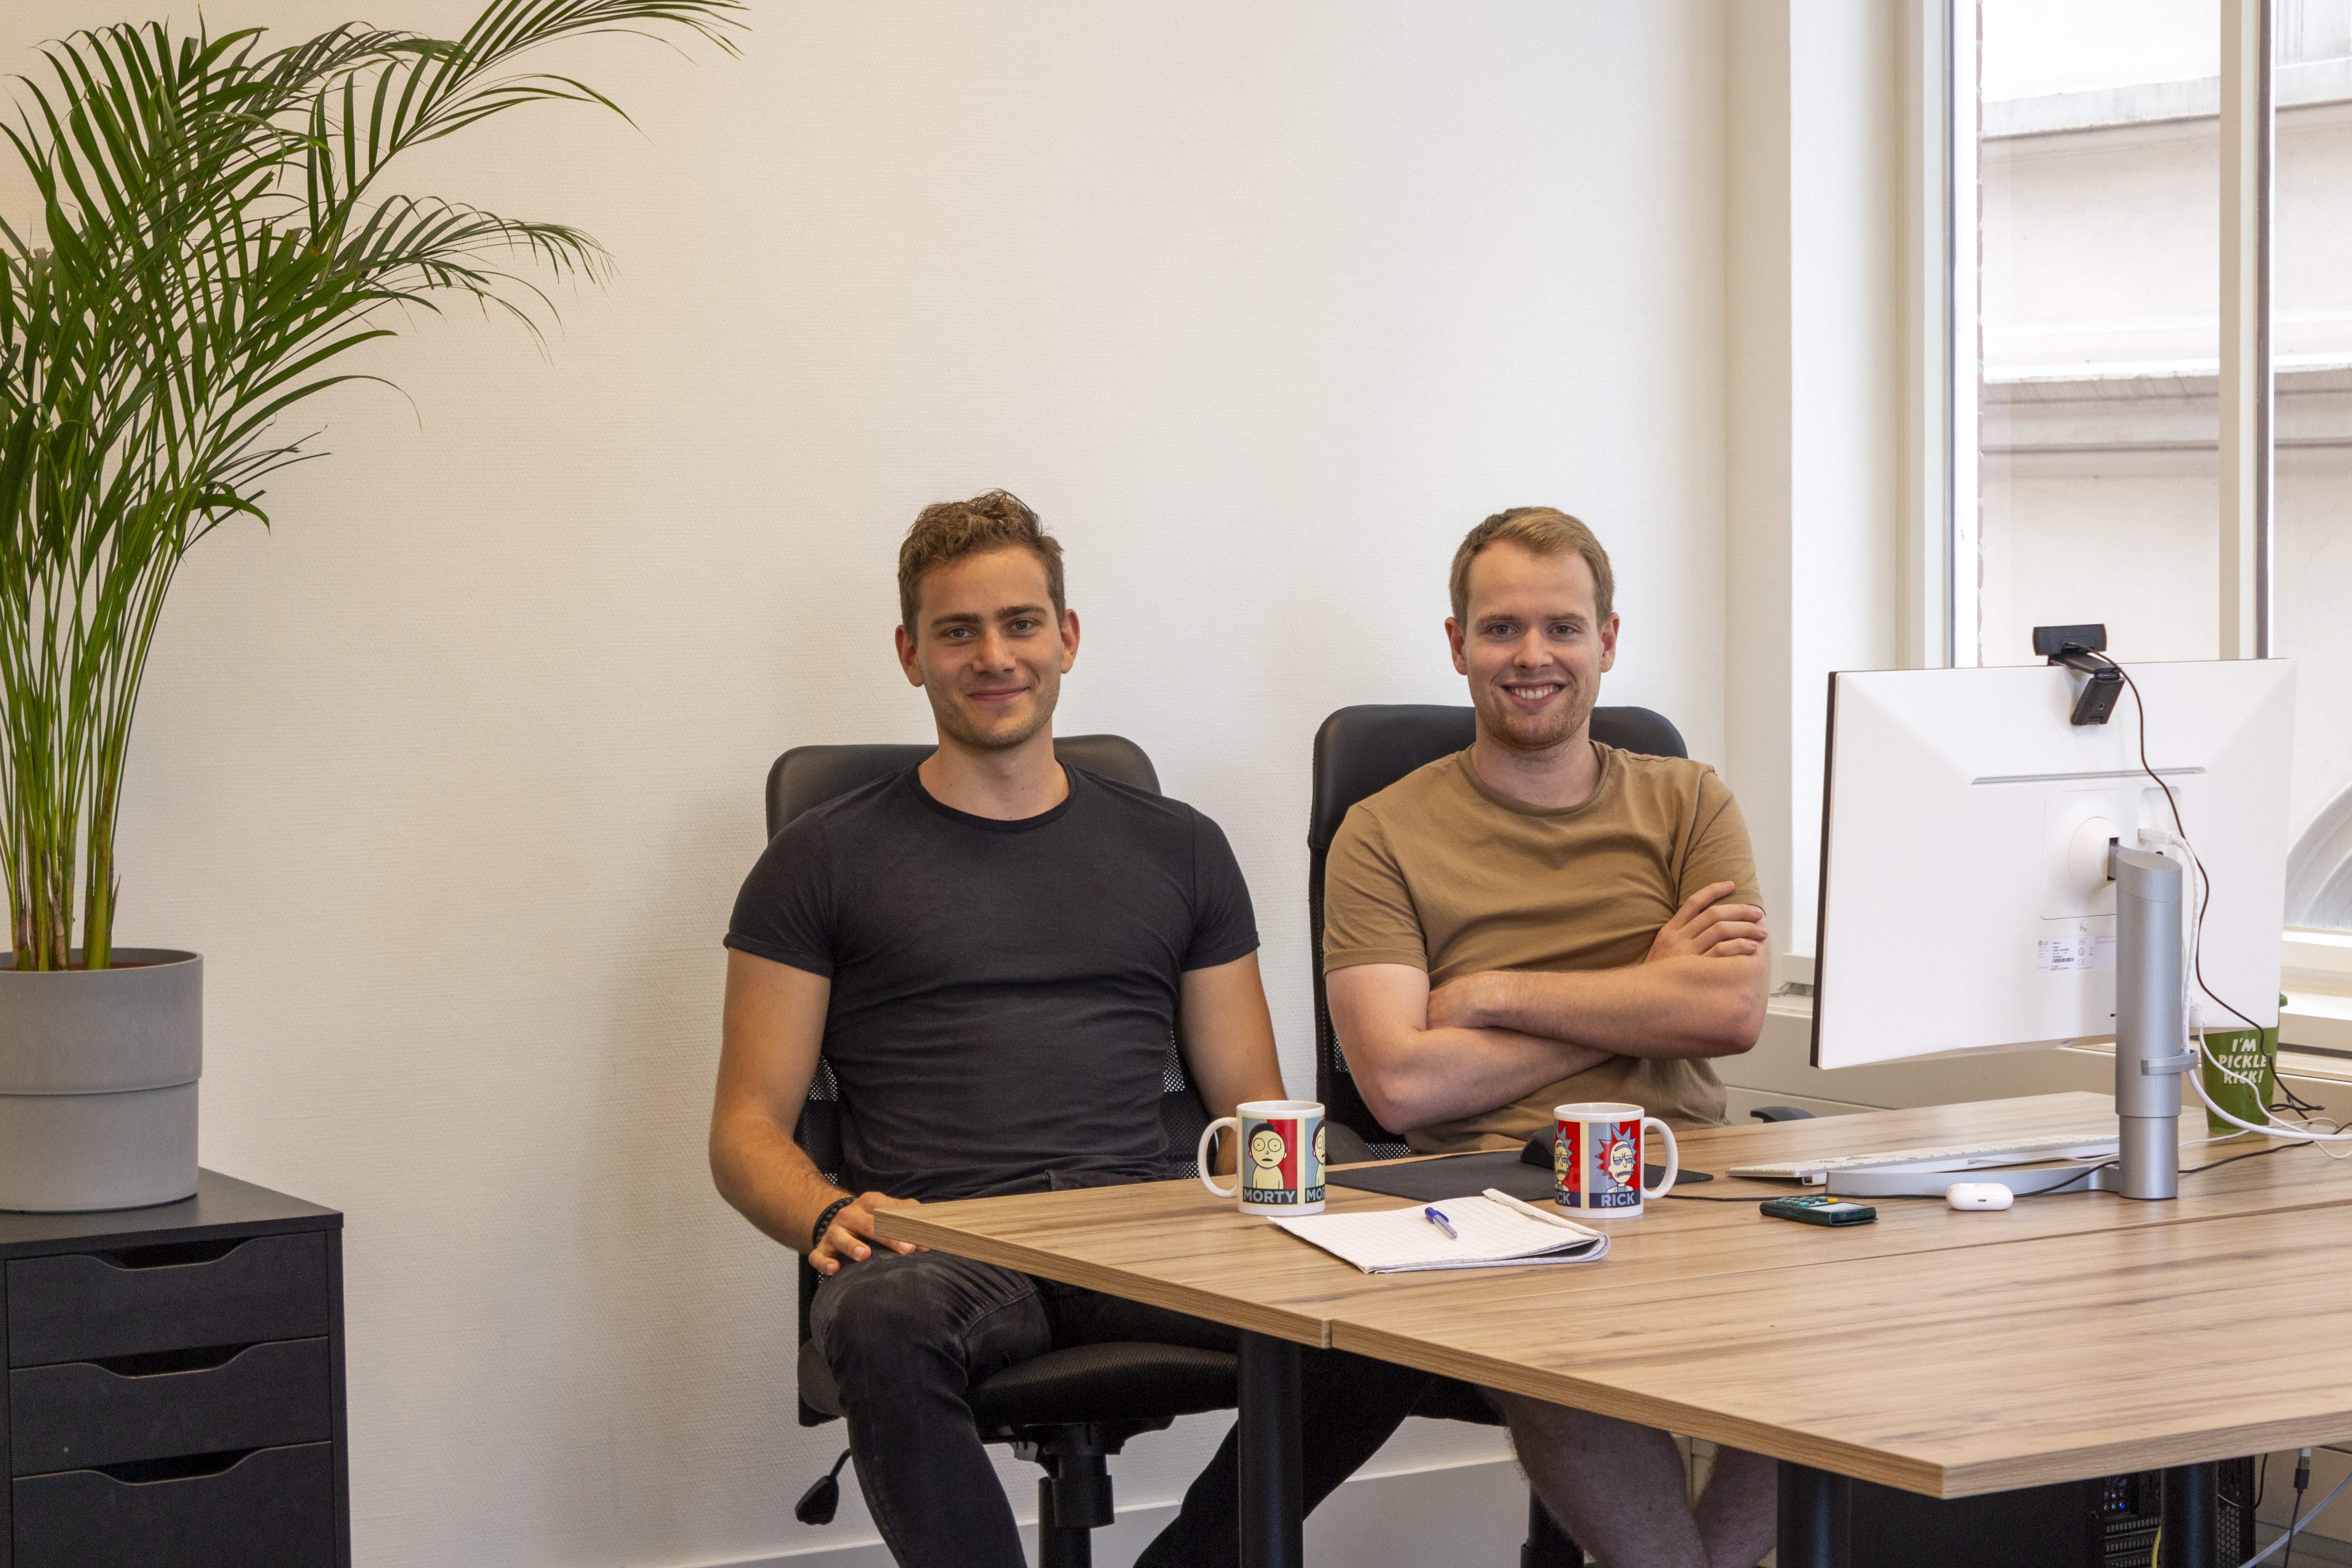 Welcome Orchest - the latest Open Source company to emerge from Seedcamp